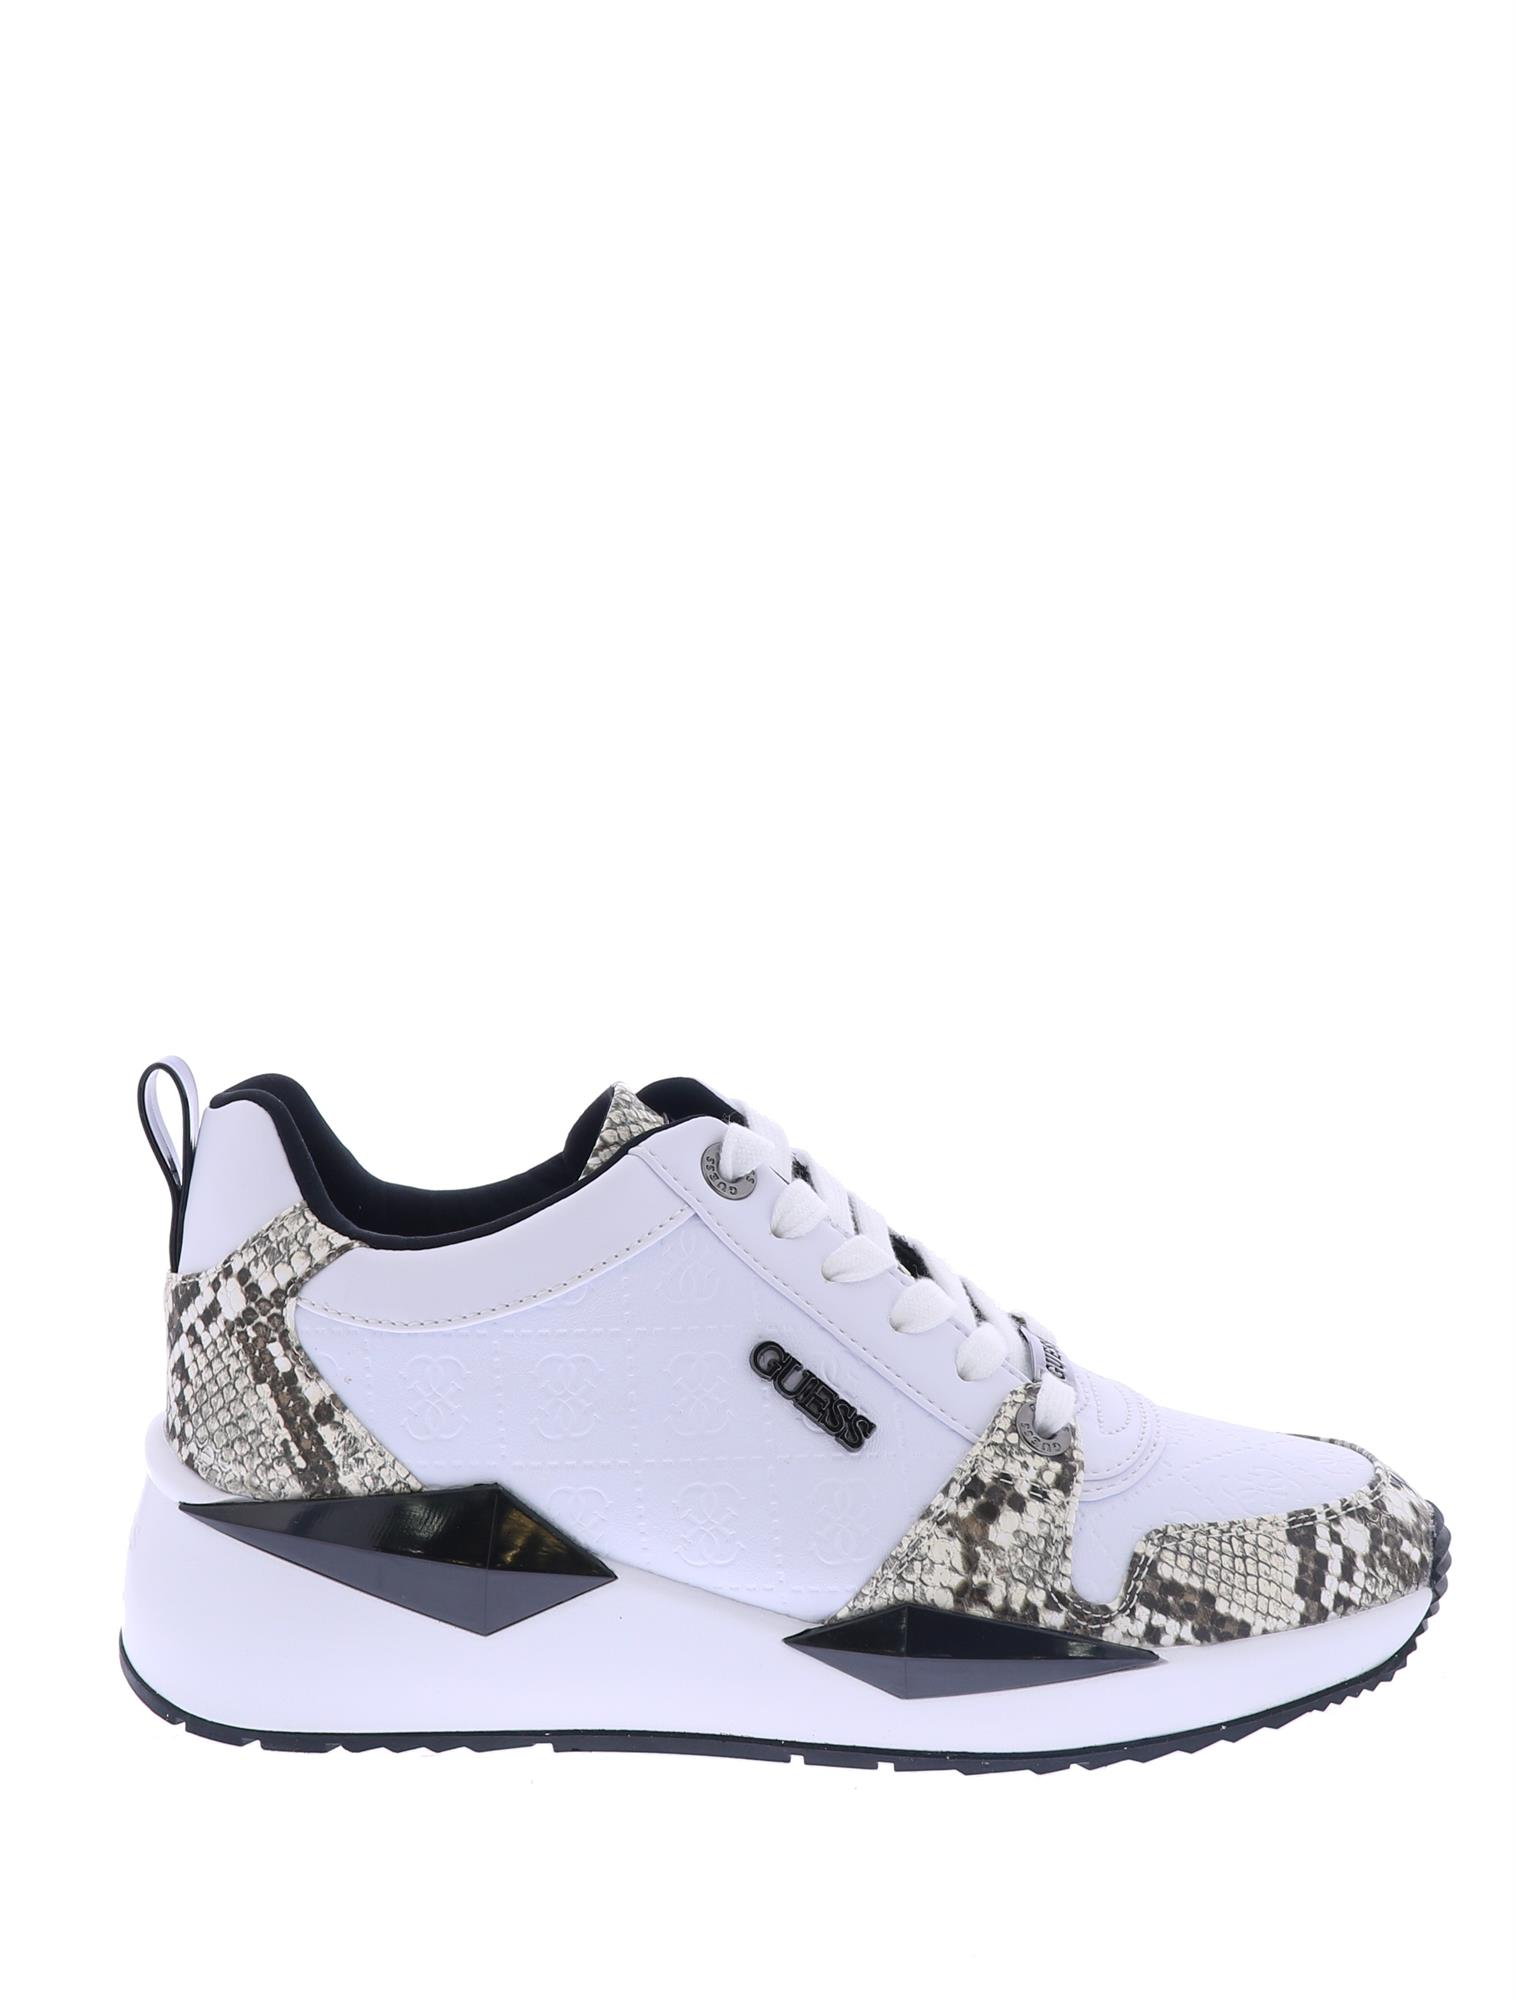 Guess Tallyn White Black Lage Sneakers Sneakers Nolten